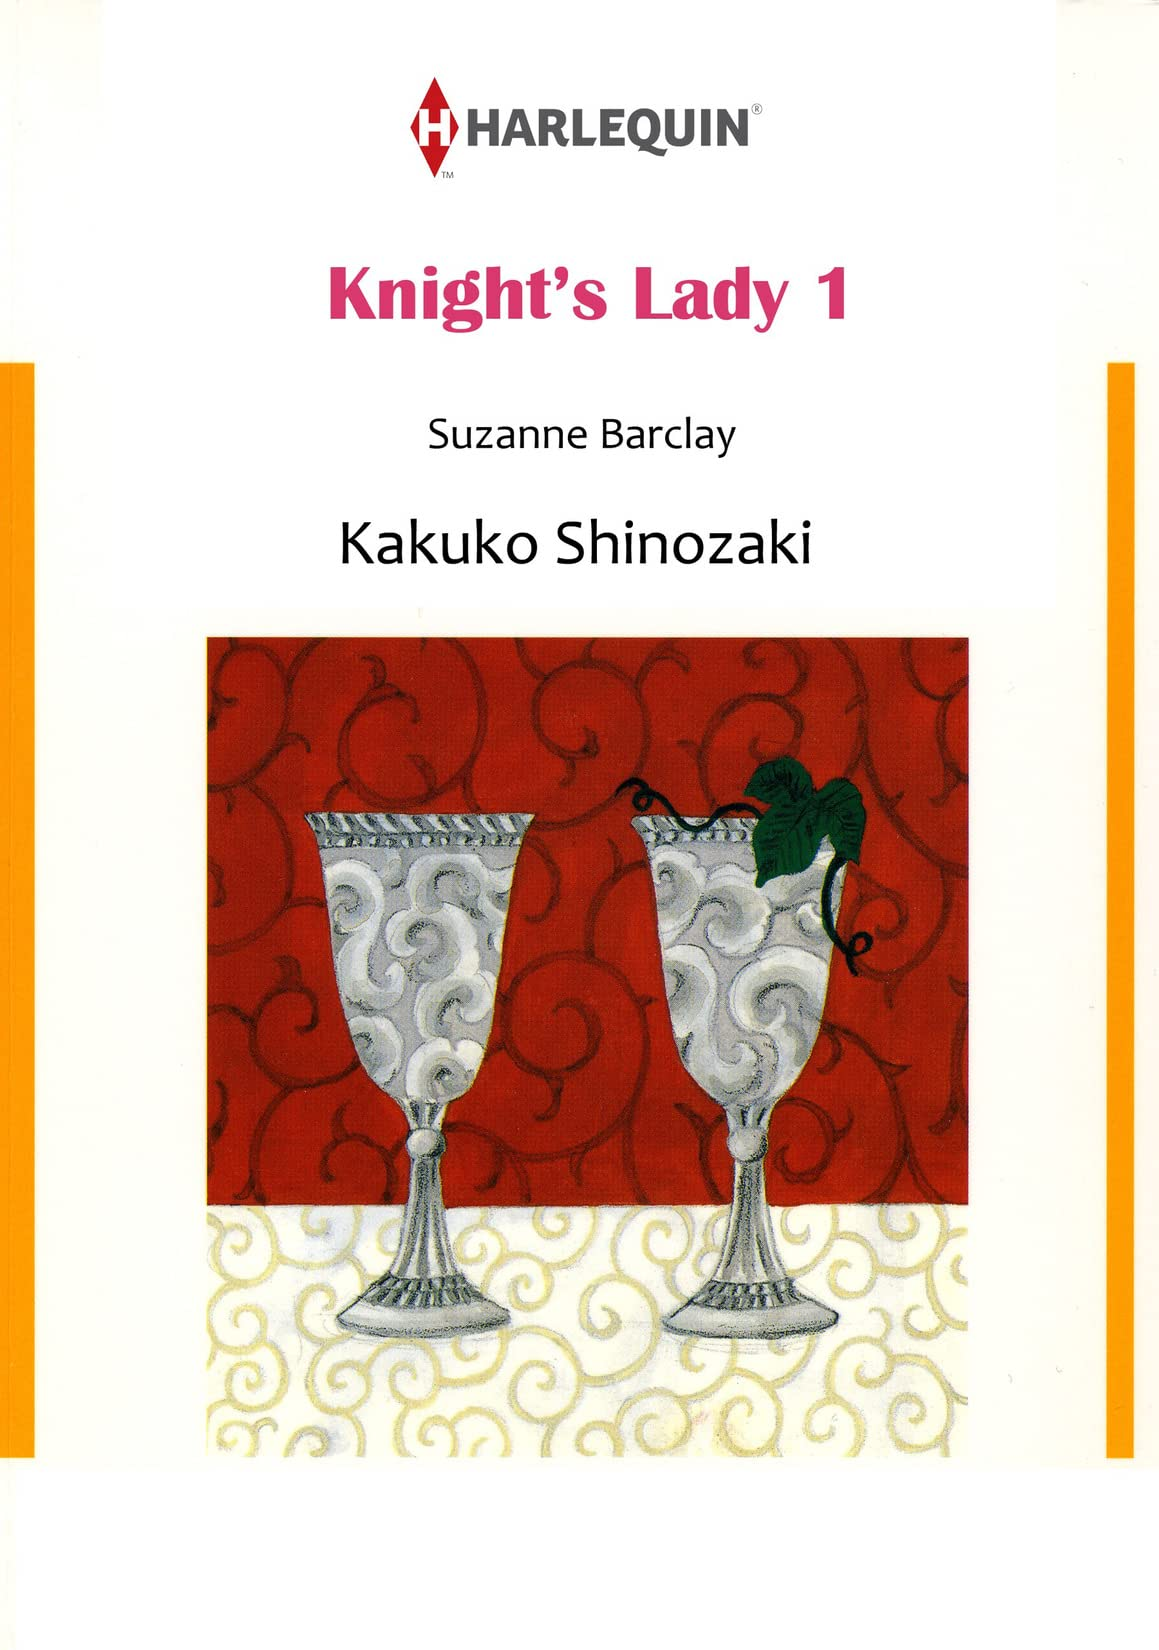 Knight's Lady Vol. 1